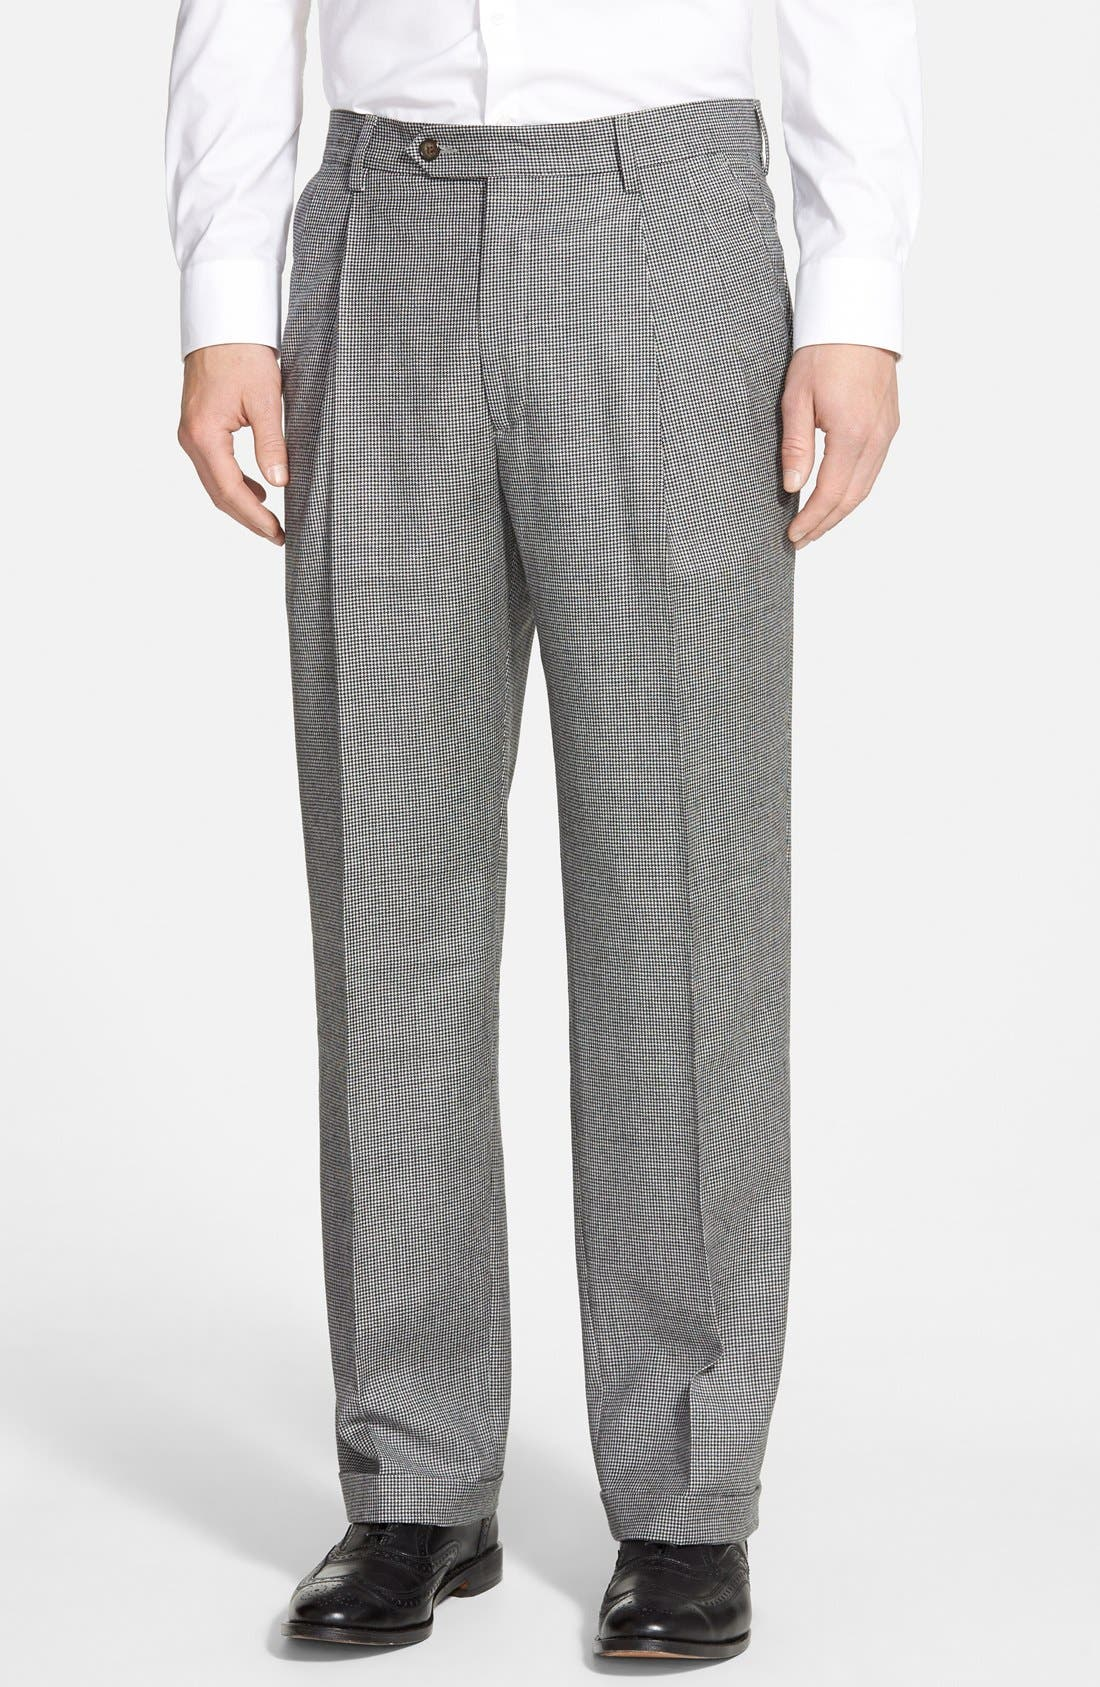 Pleated Houndstooth Wool Trousers,                             Main thumbnail 1, color,                             060